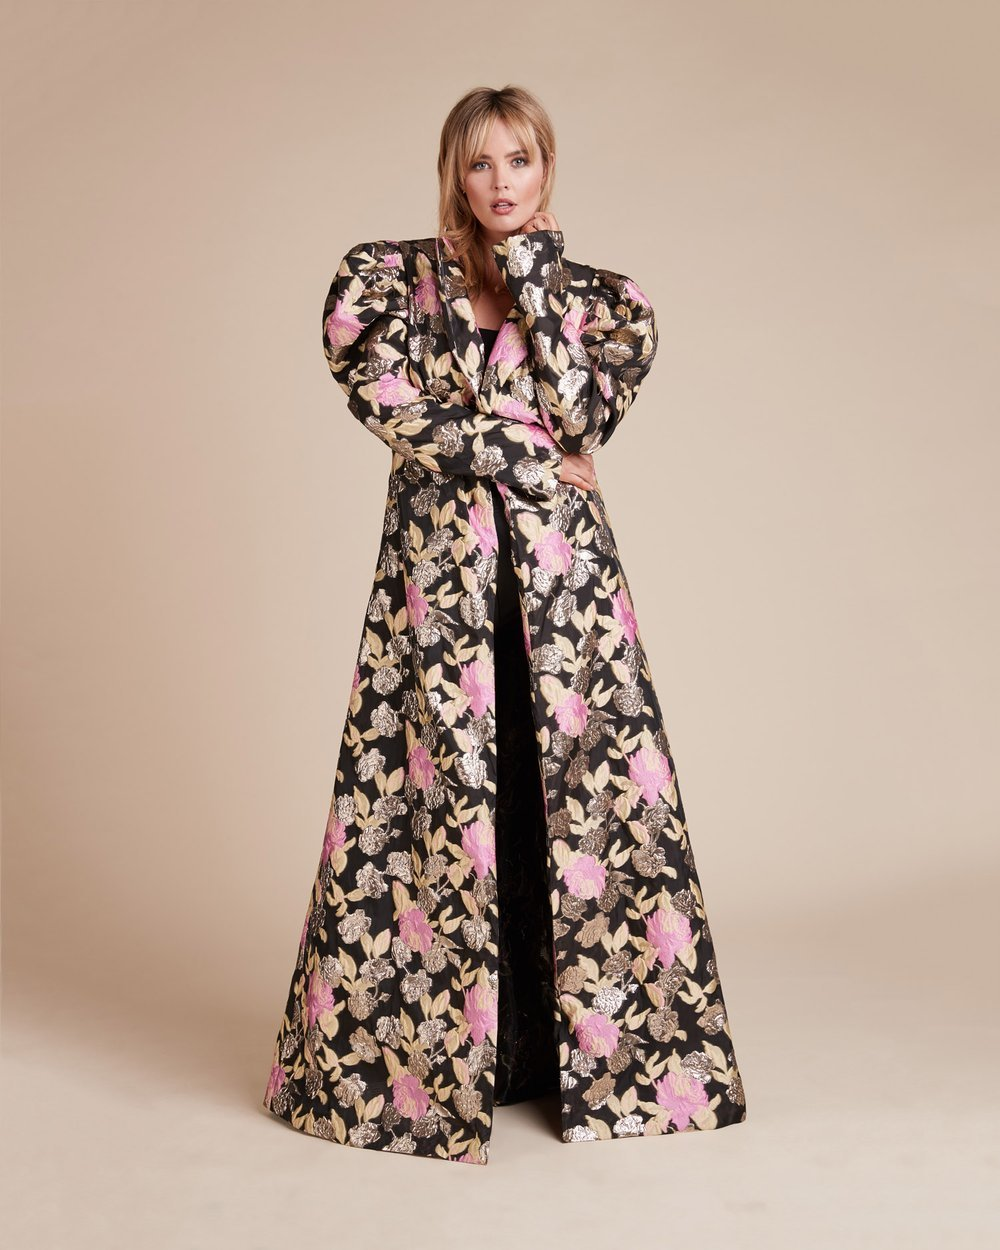 Luxury Plus SIze Fashion Finds at 11 Honore: CHRISTIAN SIRIANO Psychadelic Floral Evening Plus Size Coat